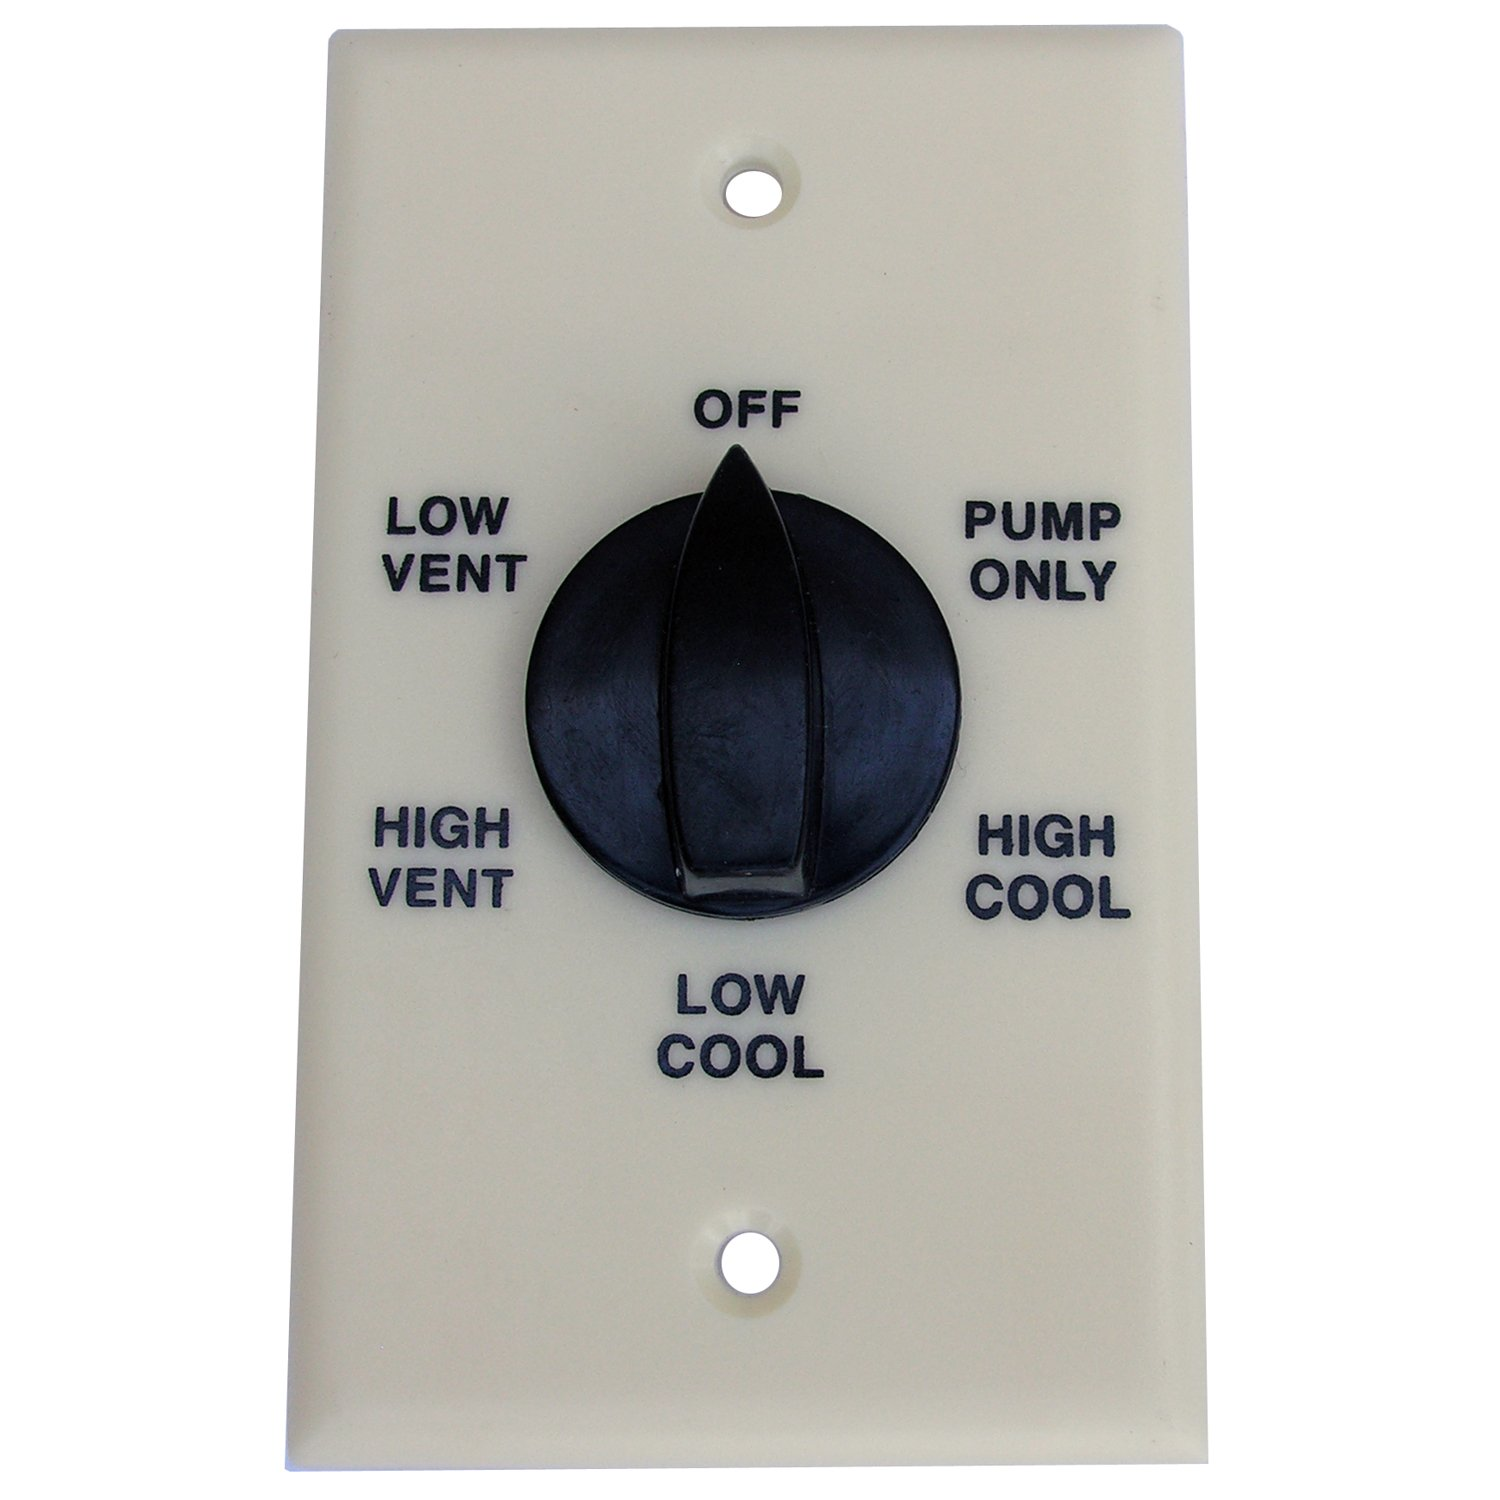 LASCO 36-0233 Evaporative Water Cooler Thermostat with Two Speed Six Position Switch by LASCO (Image #1)